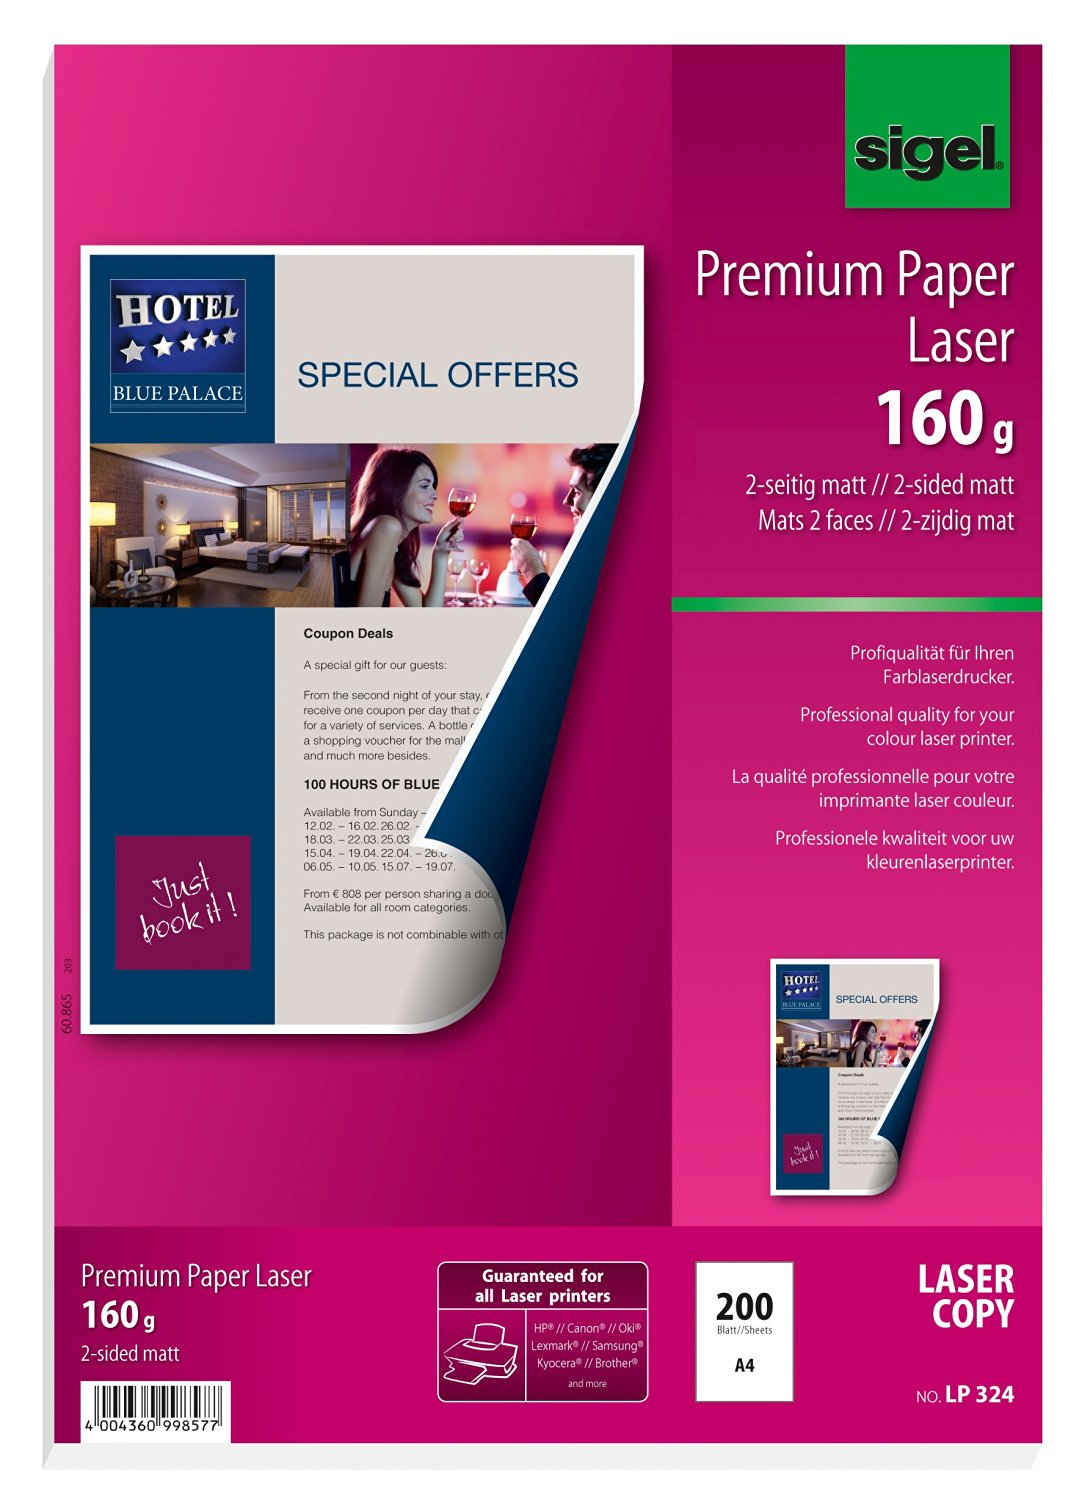 Sigel LP324 Premium Quality Paper for Colour Laser/Copier, 2-sided matt, 108.1 lbs, A4, 200 sheets